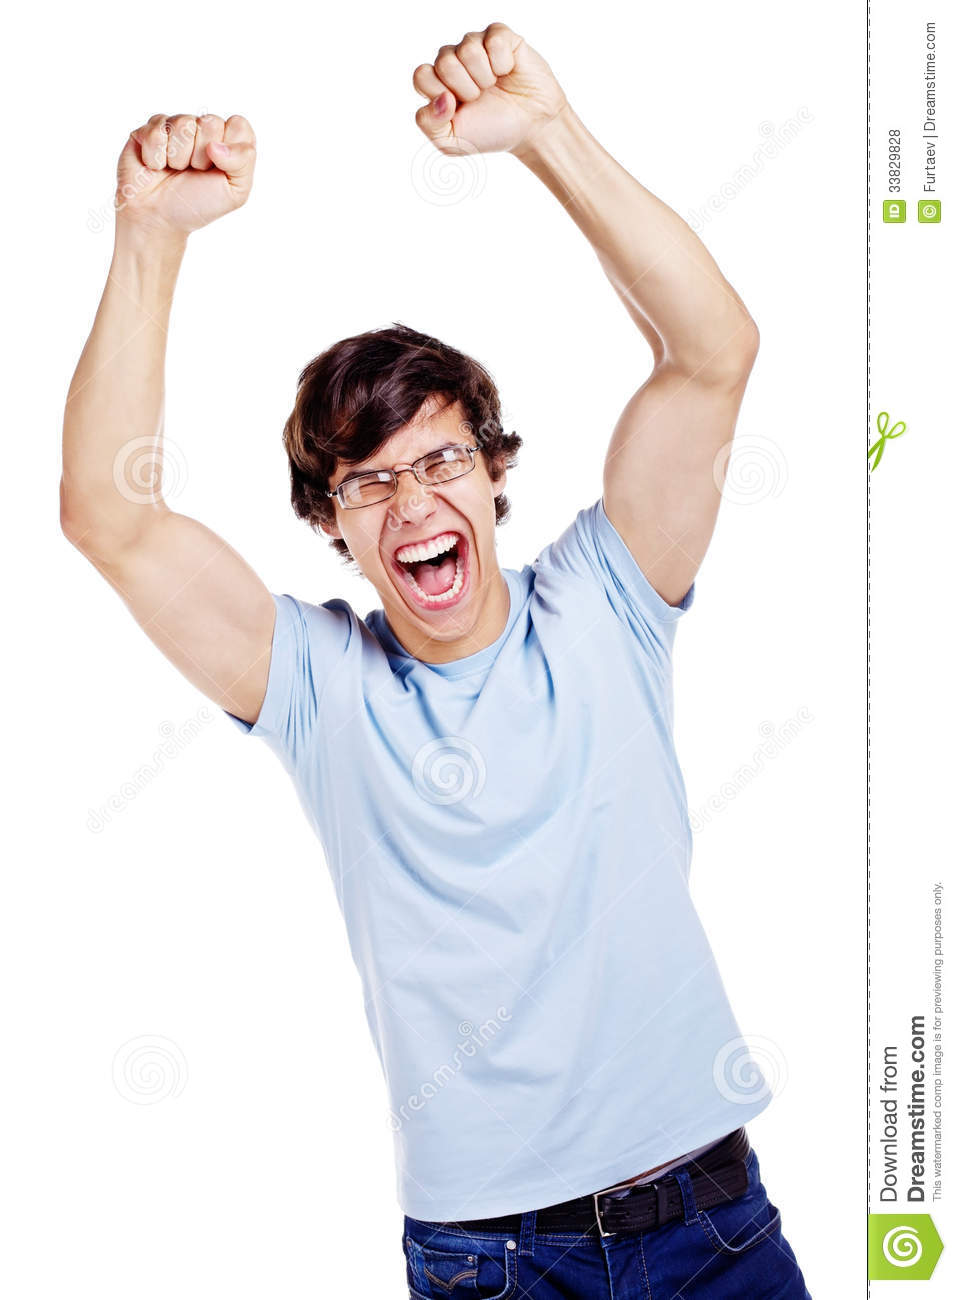 happy-guy-winning-screaming-young-man-glasses-blue-shirt-jeans-raised-fists-isolated-white-background-mask-included-33829828.jpg